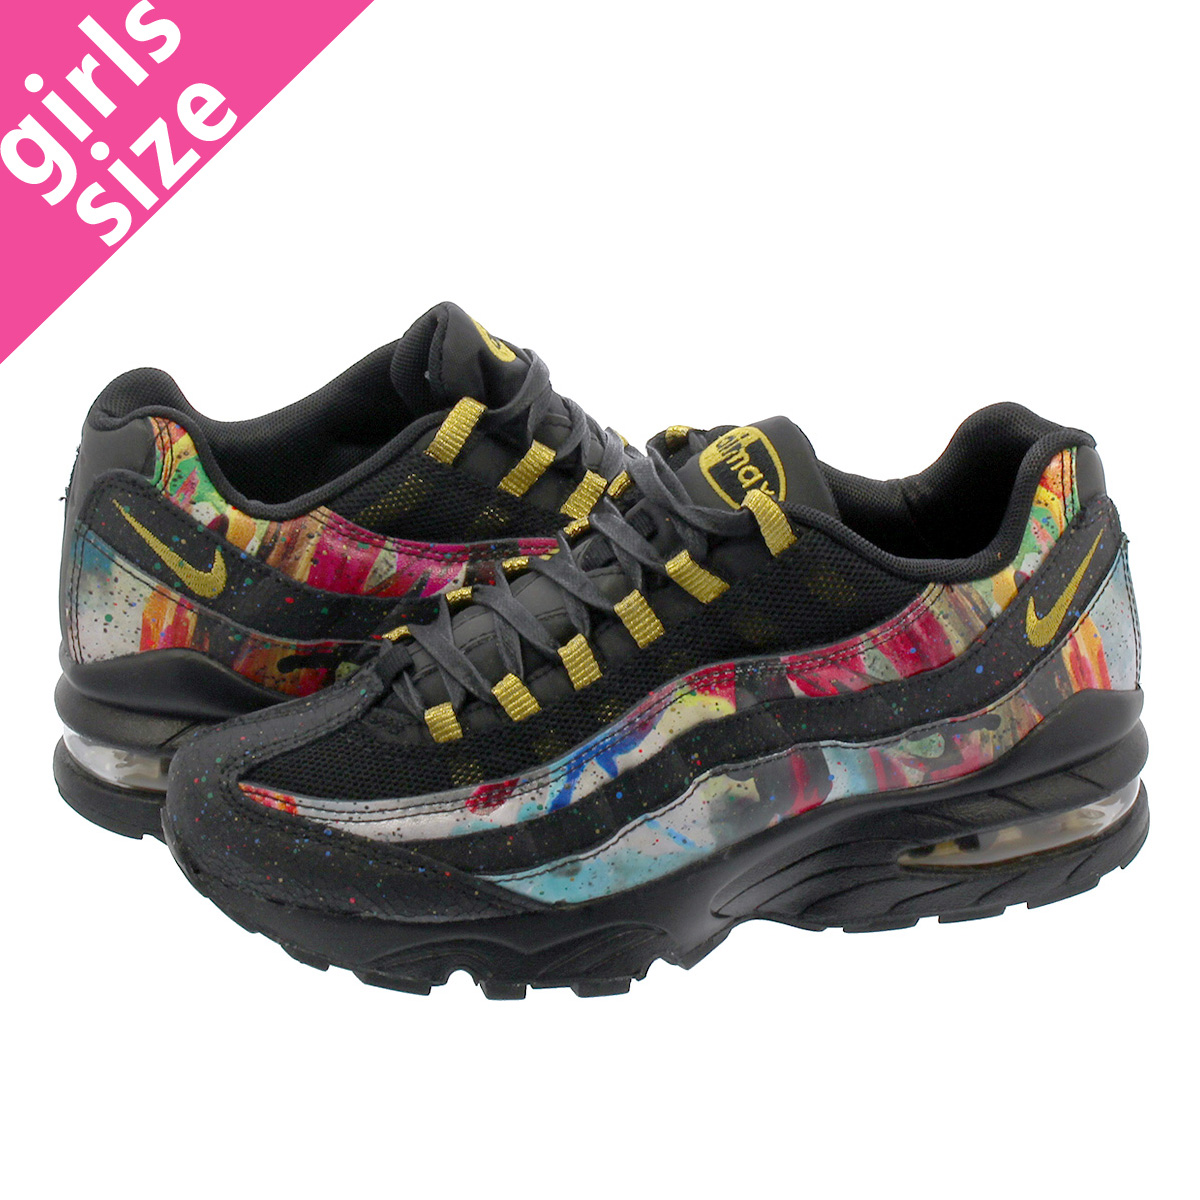 56cf847046730 Categories. « All Categories · Shoes · Women's Shoes · Sneakers · NIKE AIR  MAX 95 ...